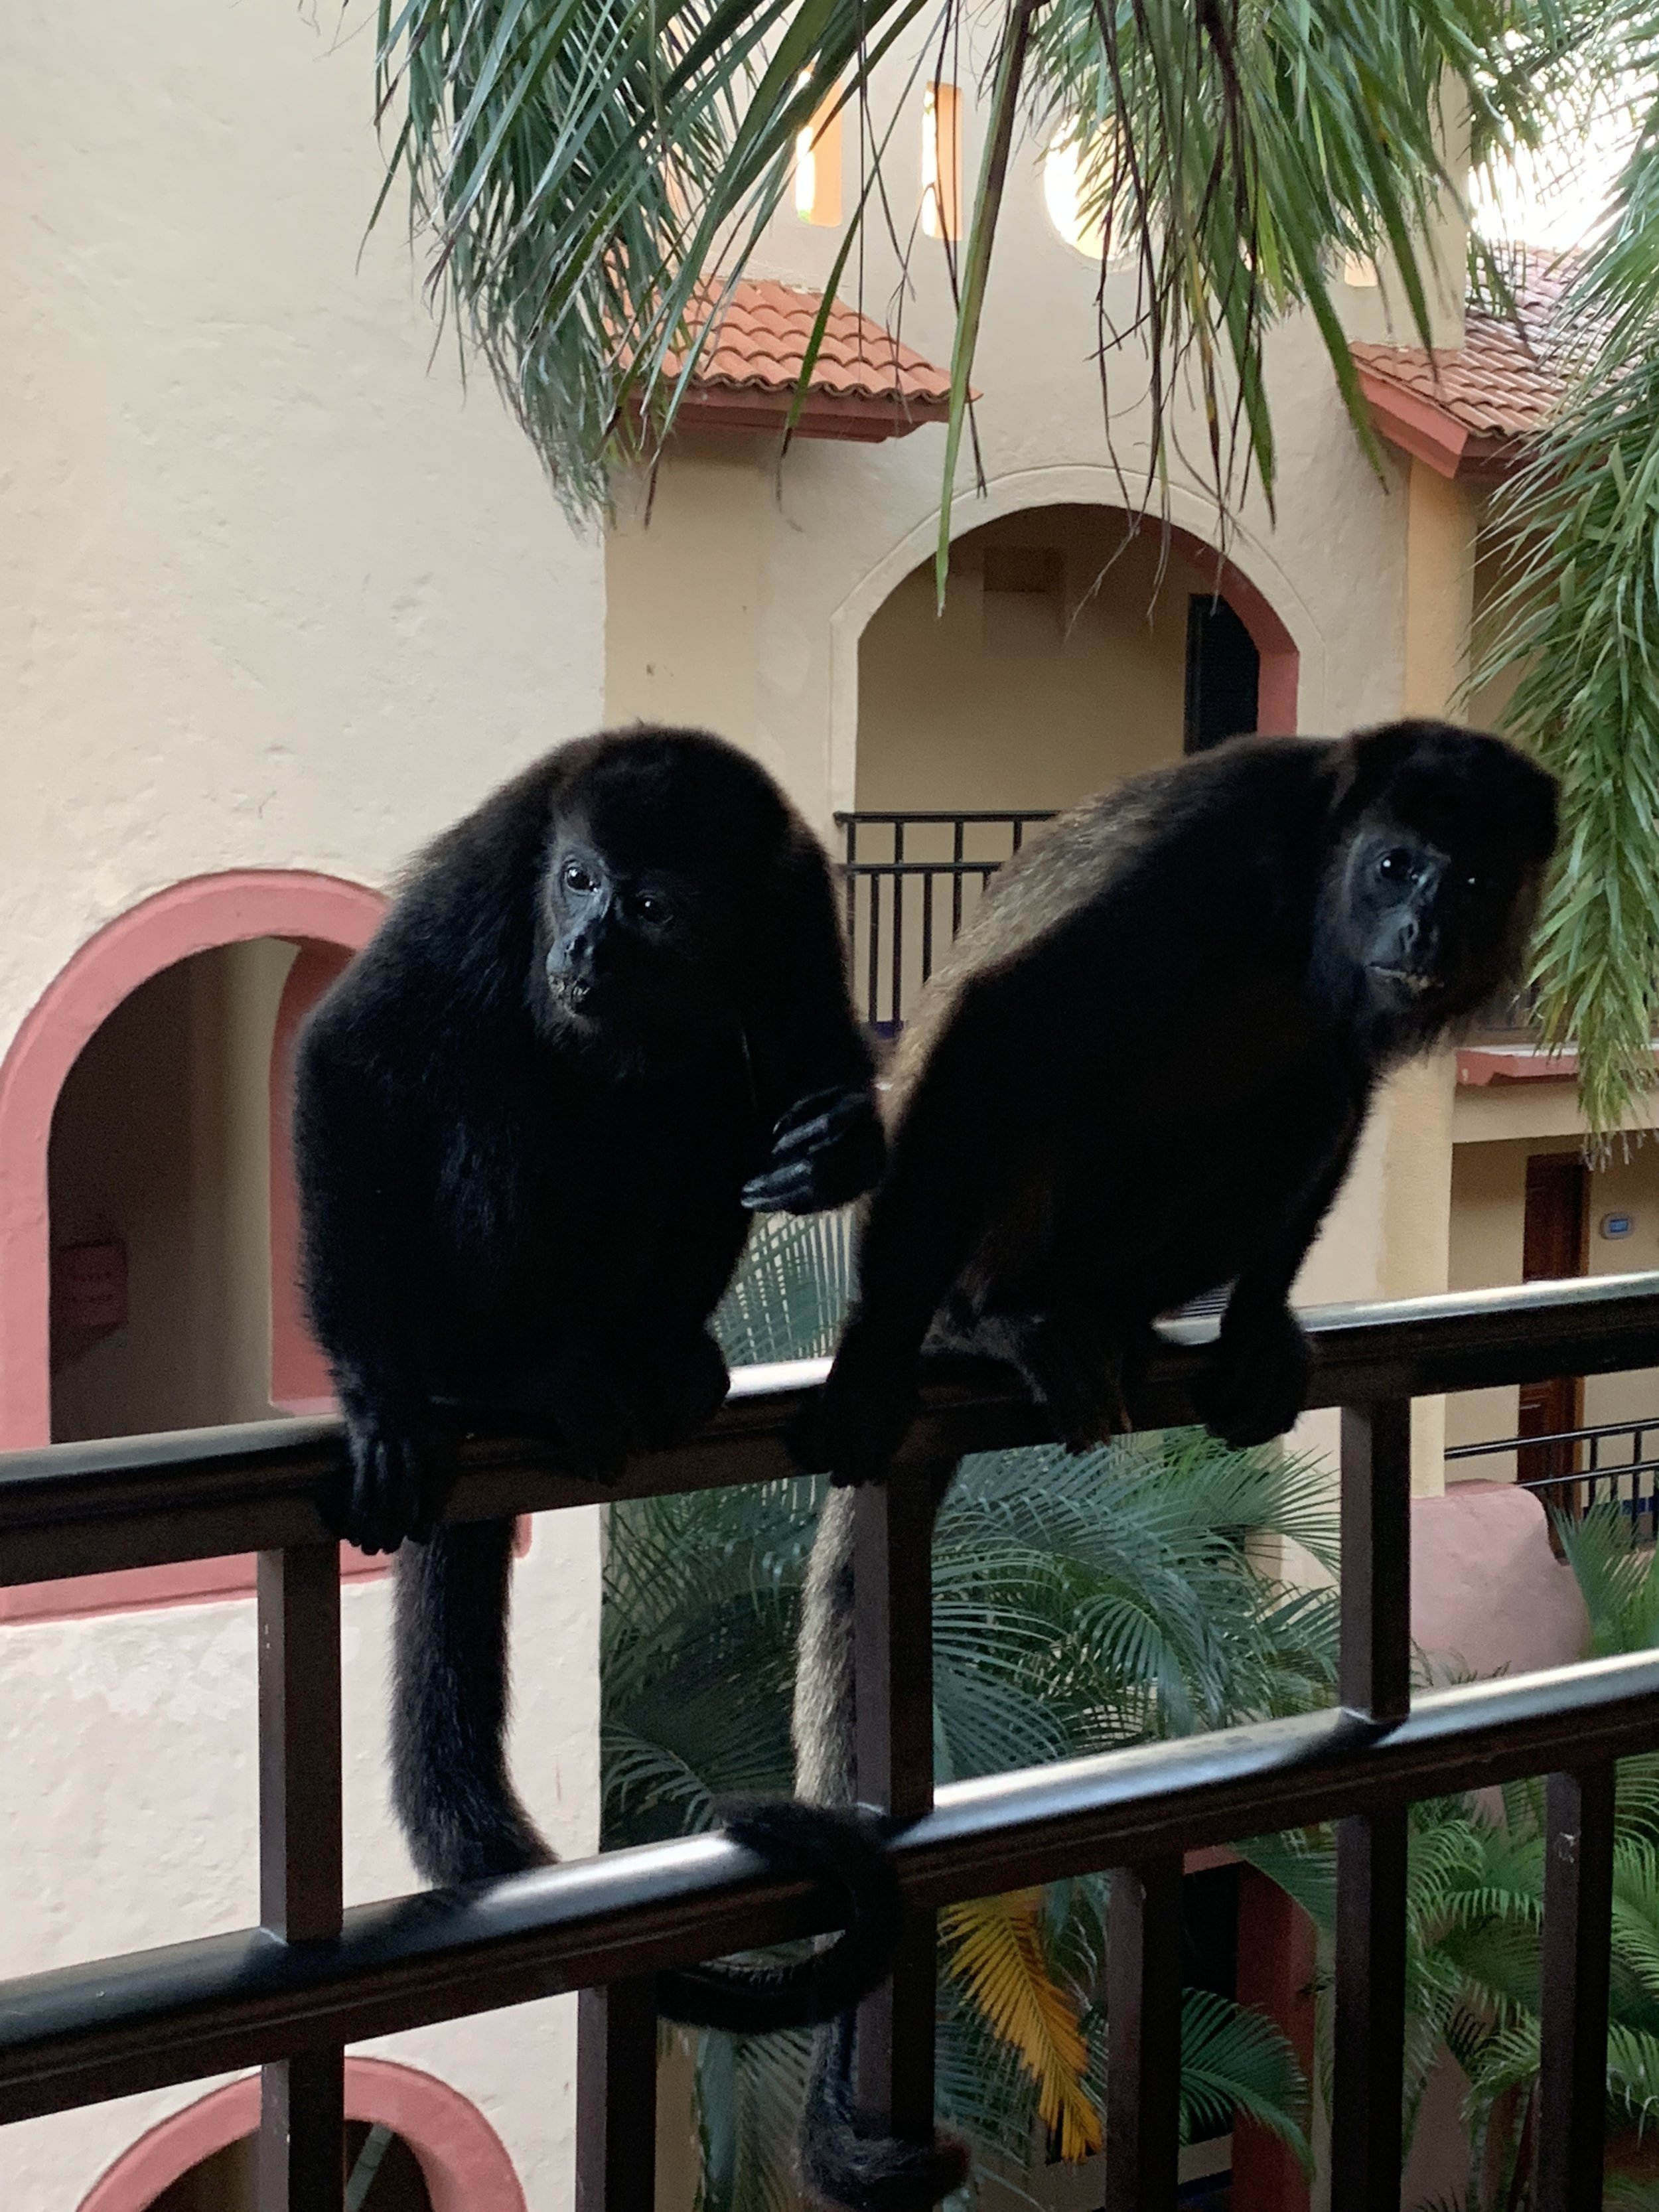 Some monkeys outside of our room!